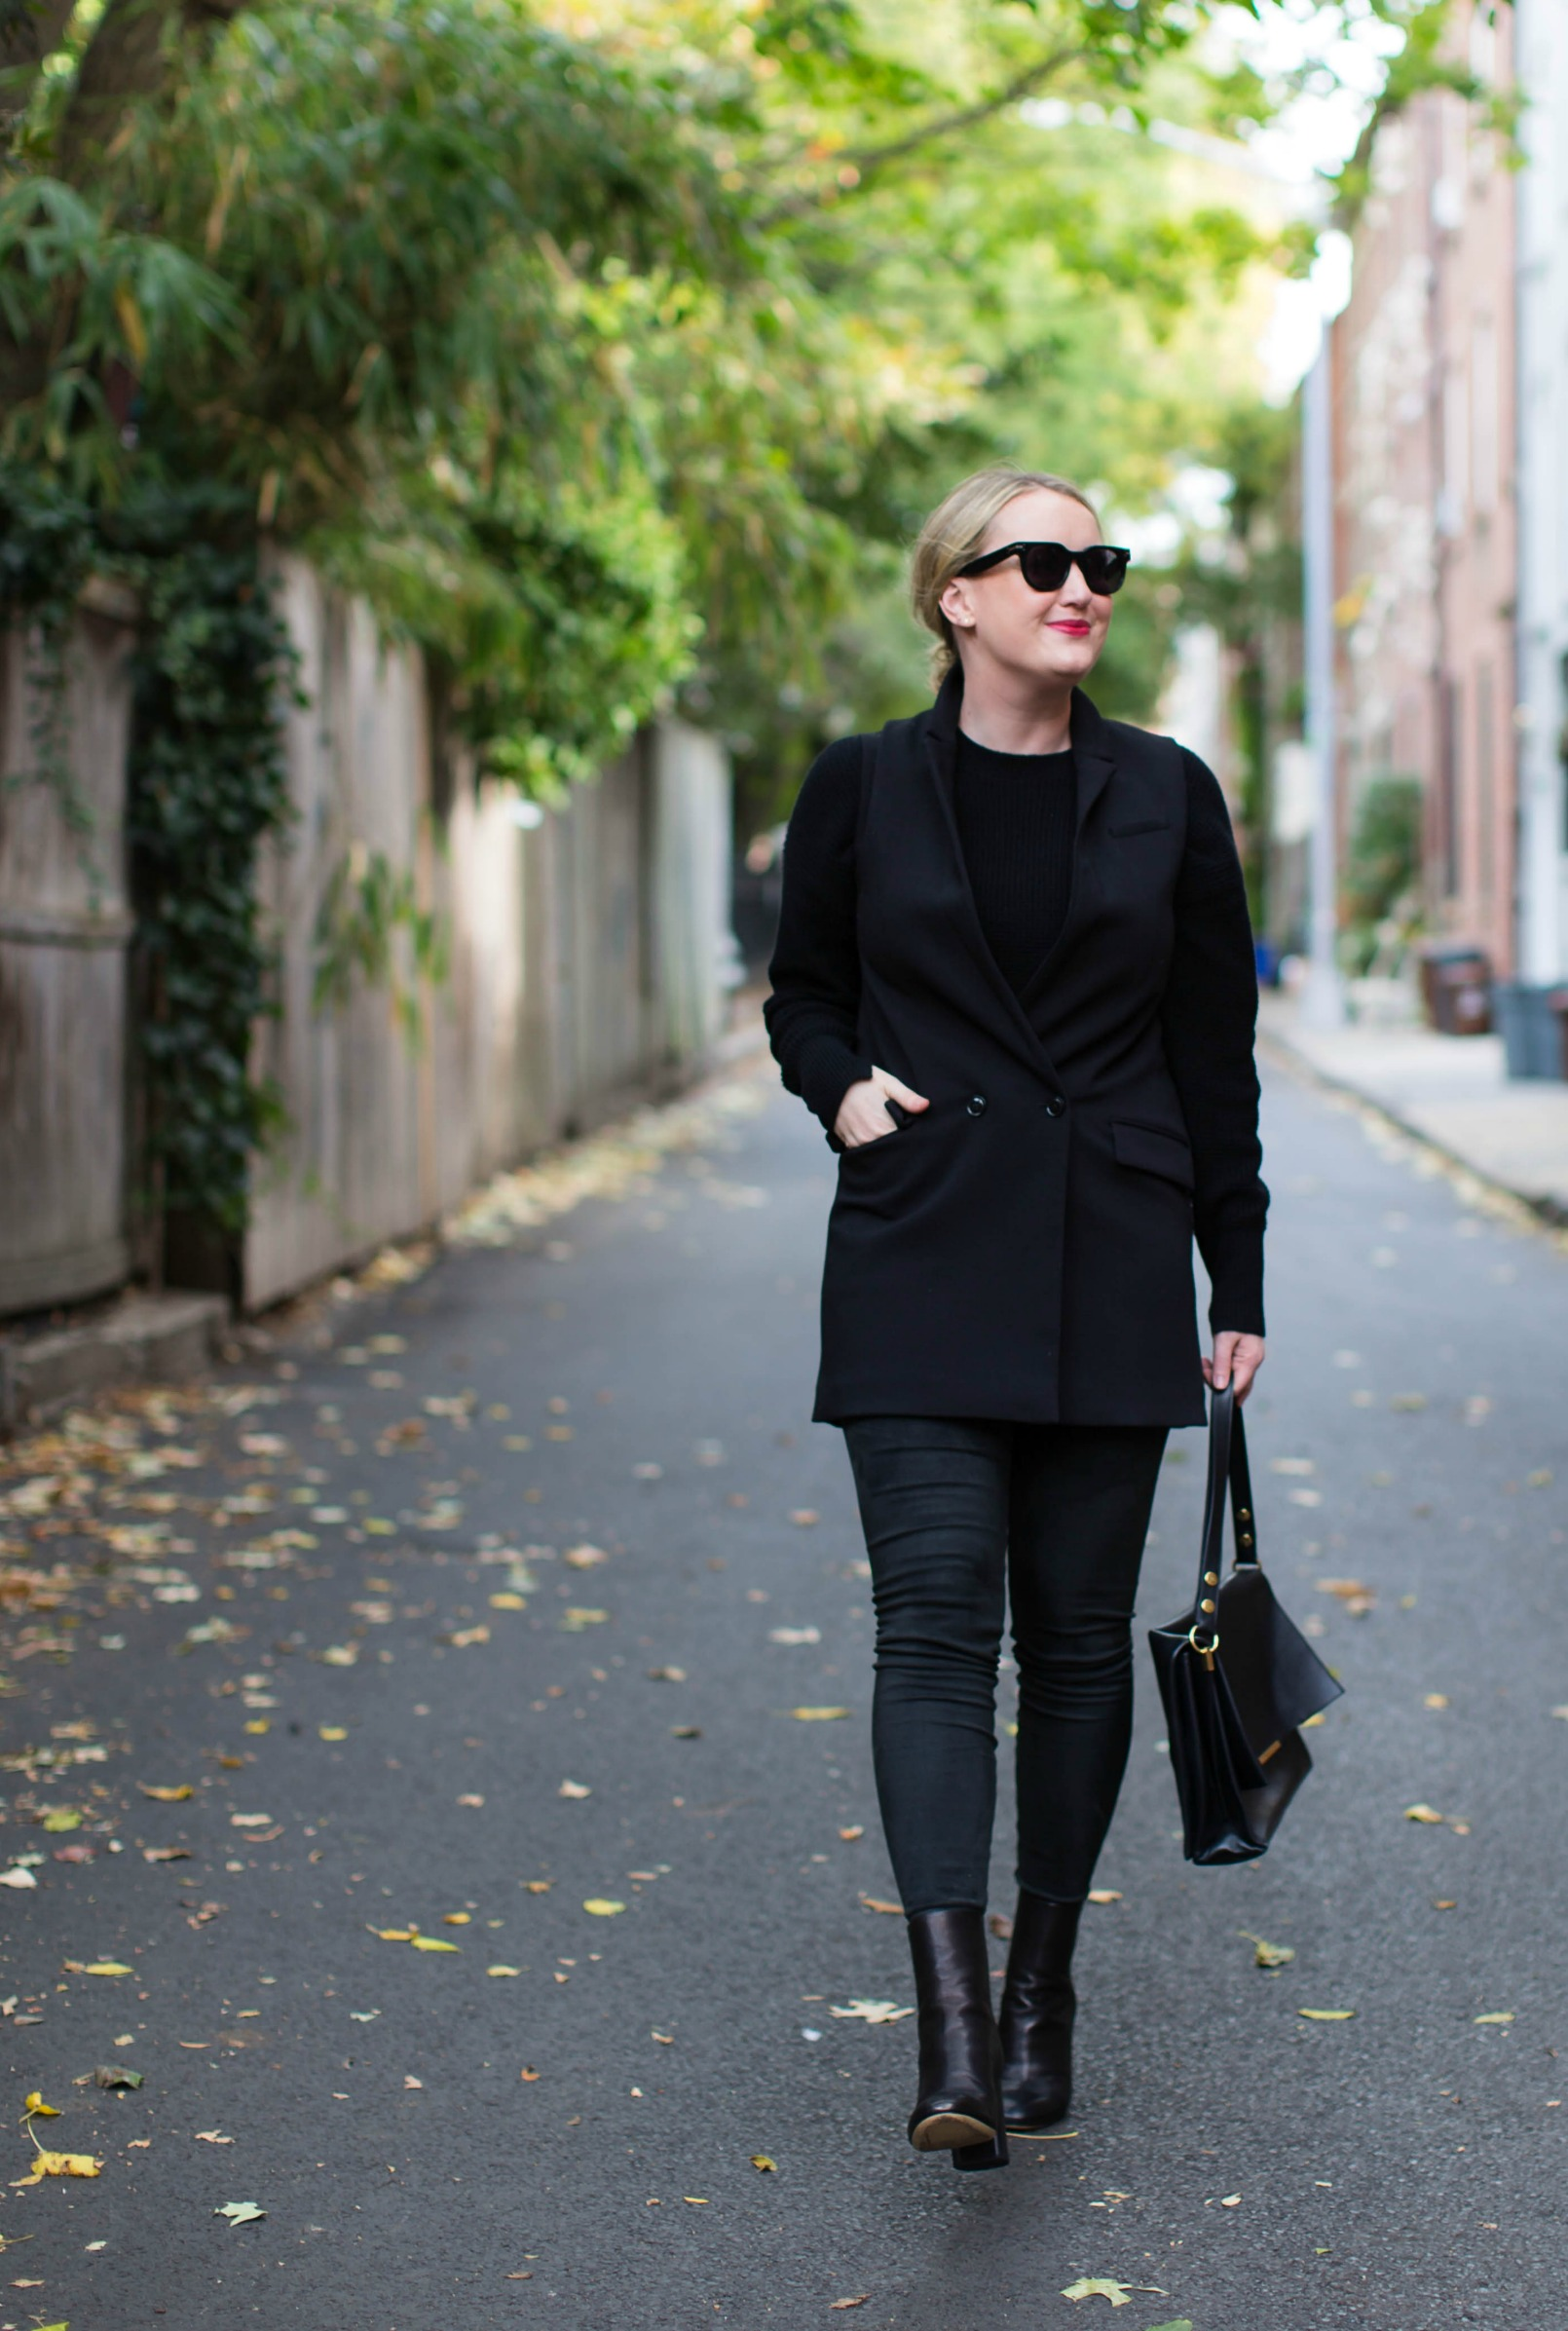 Meghan Donovan of wit & whimsy wears an all black look